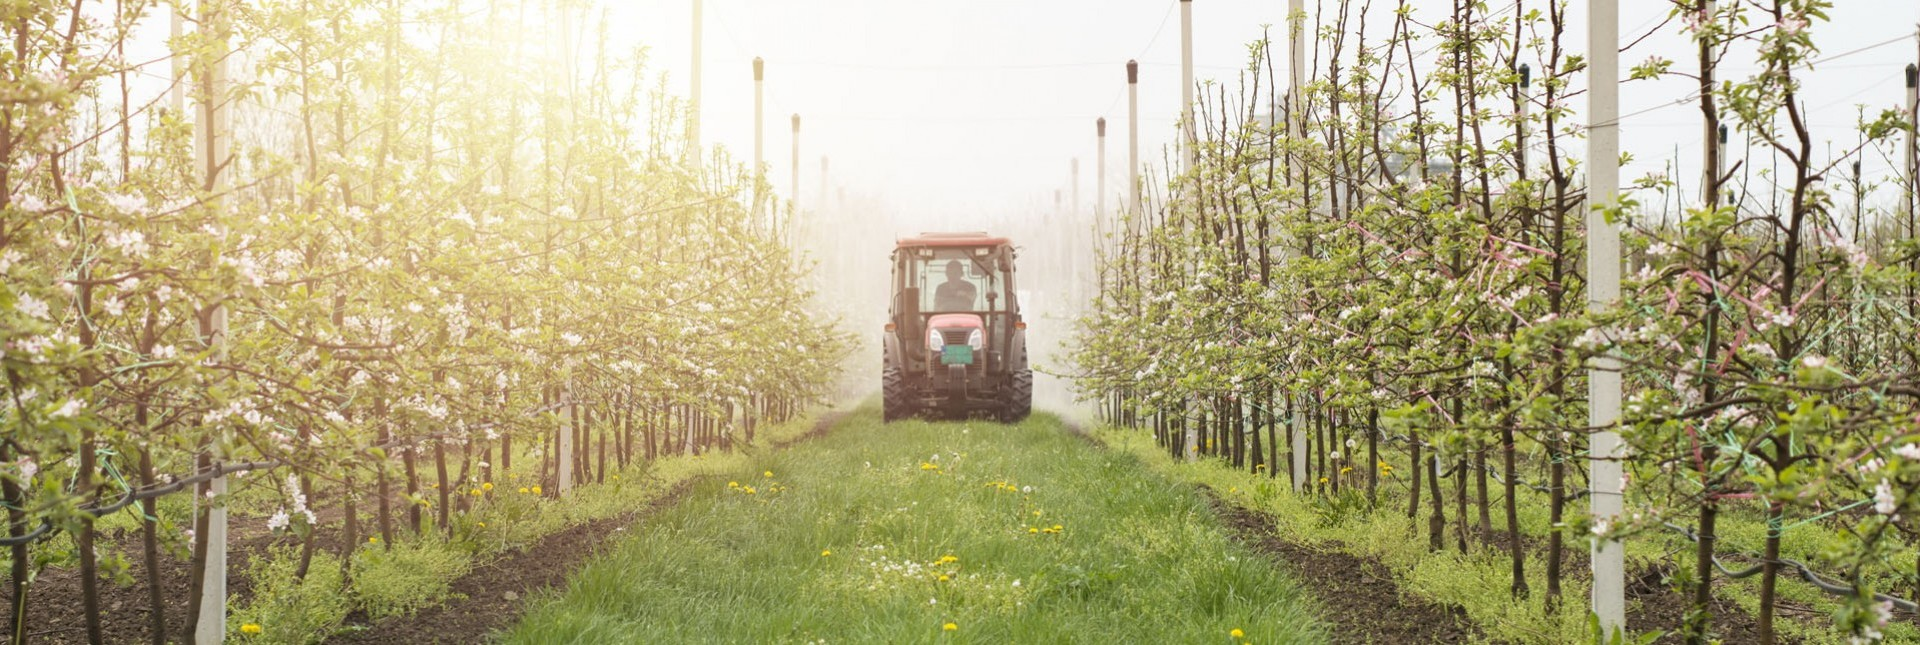 Environmental Impacts: Organic vs Non-Organic Pesticides